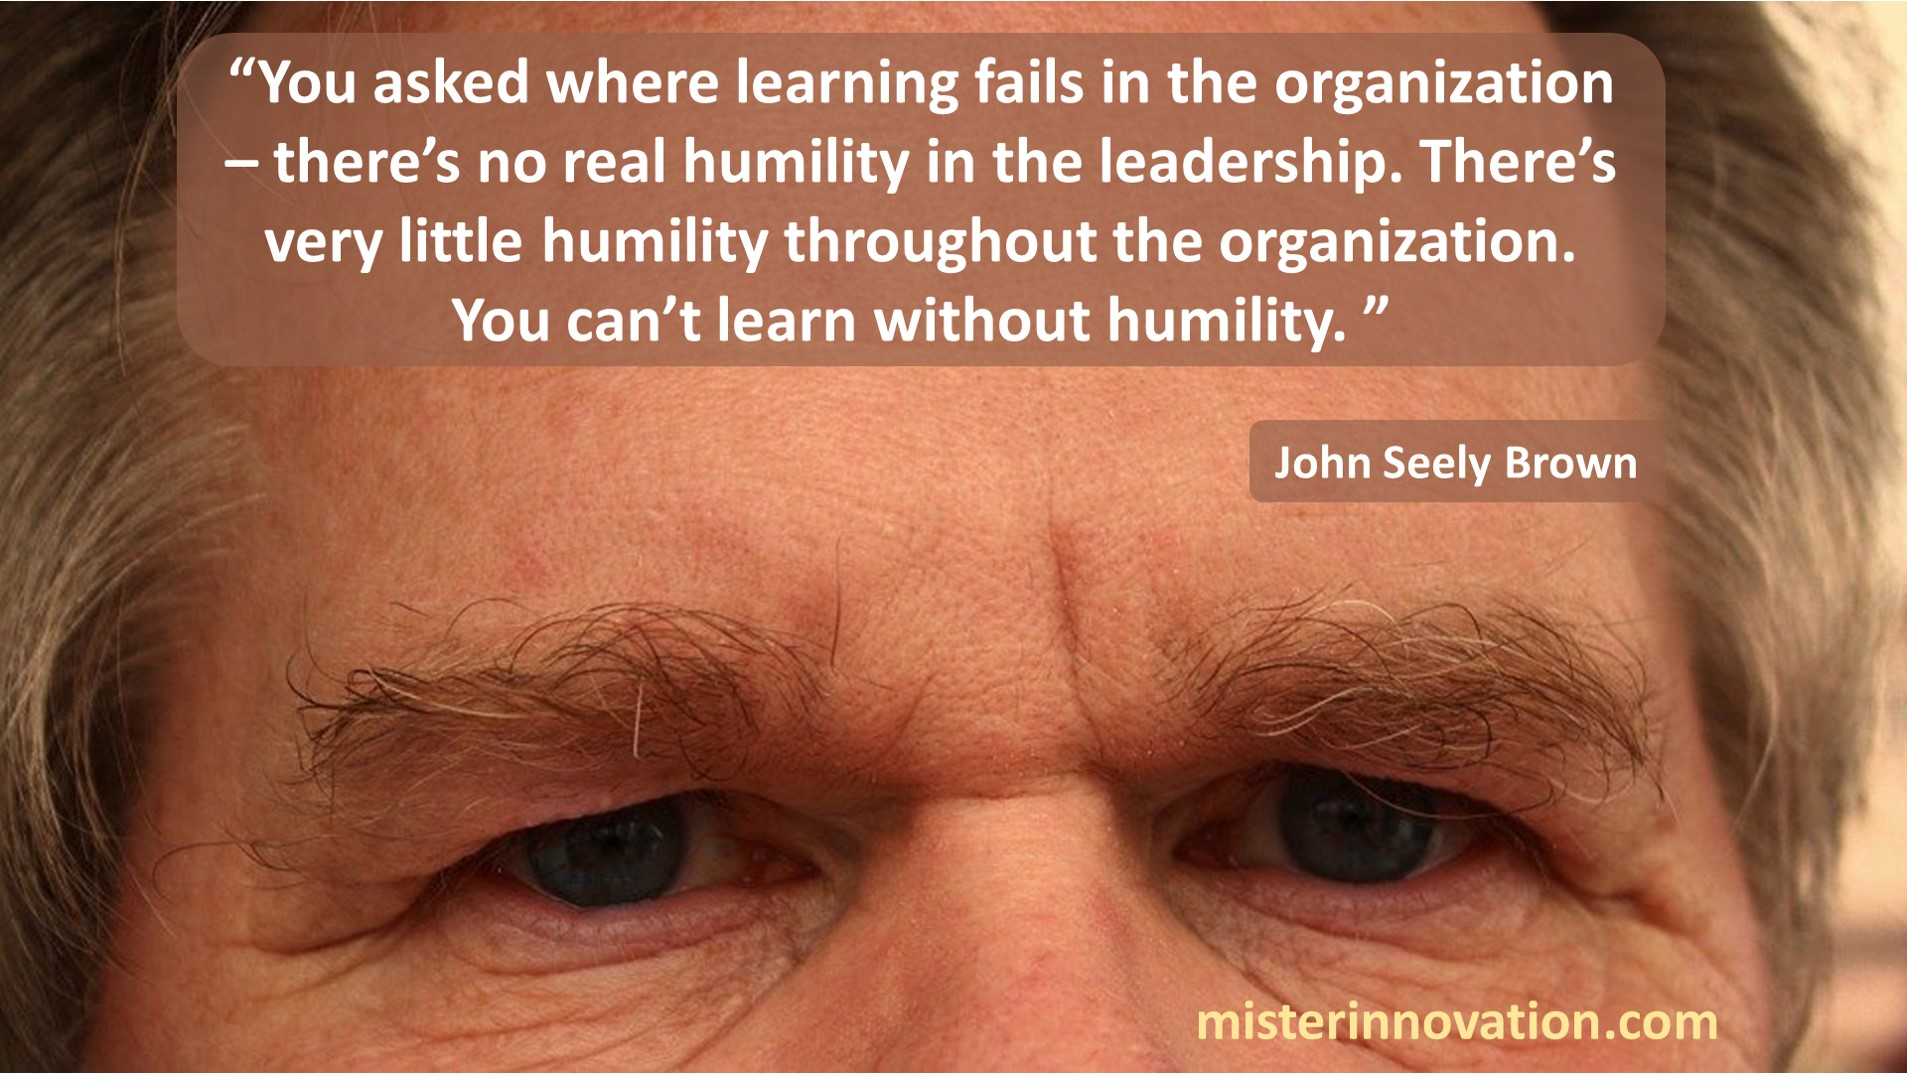 John Seely Brown Humility